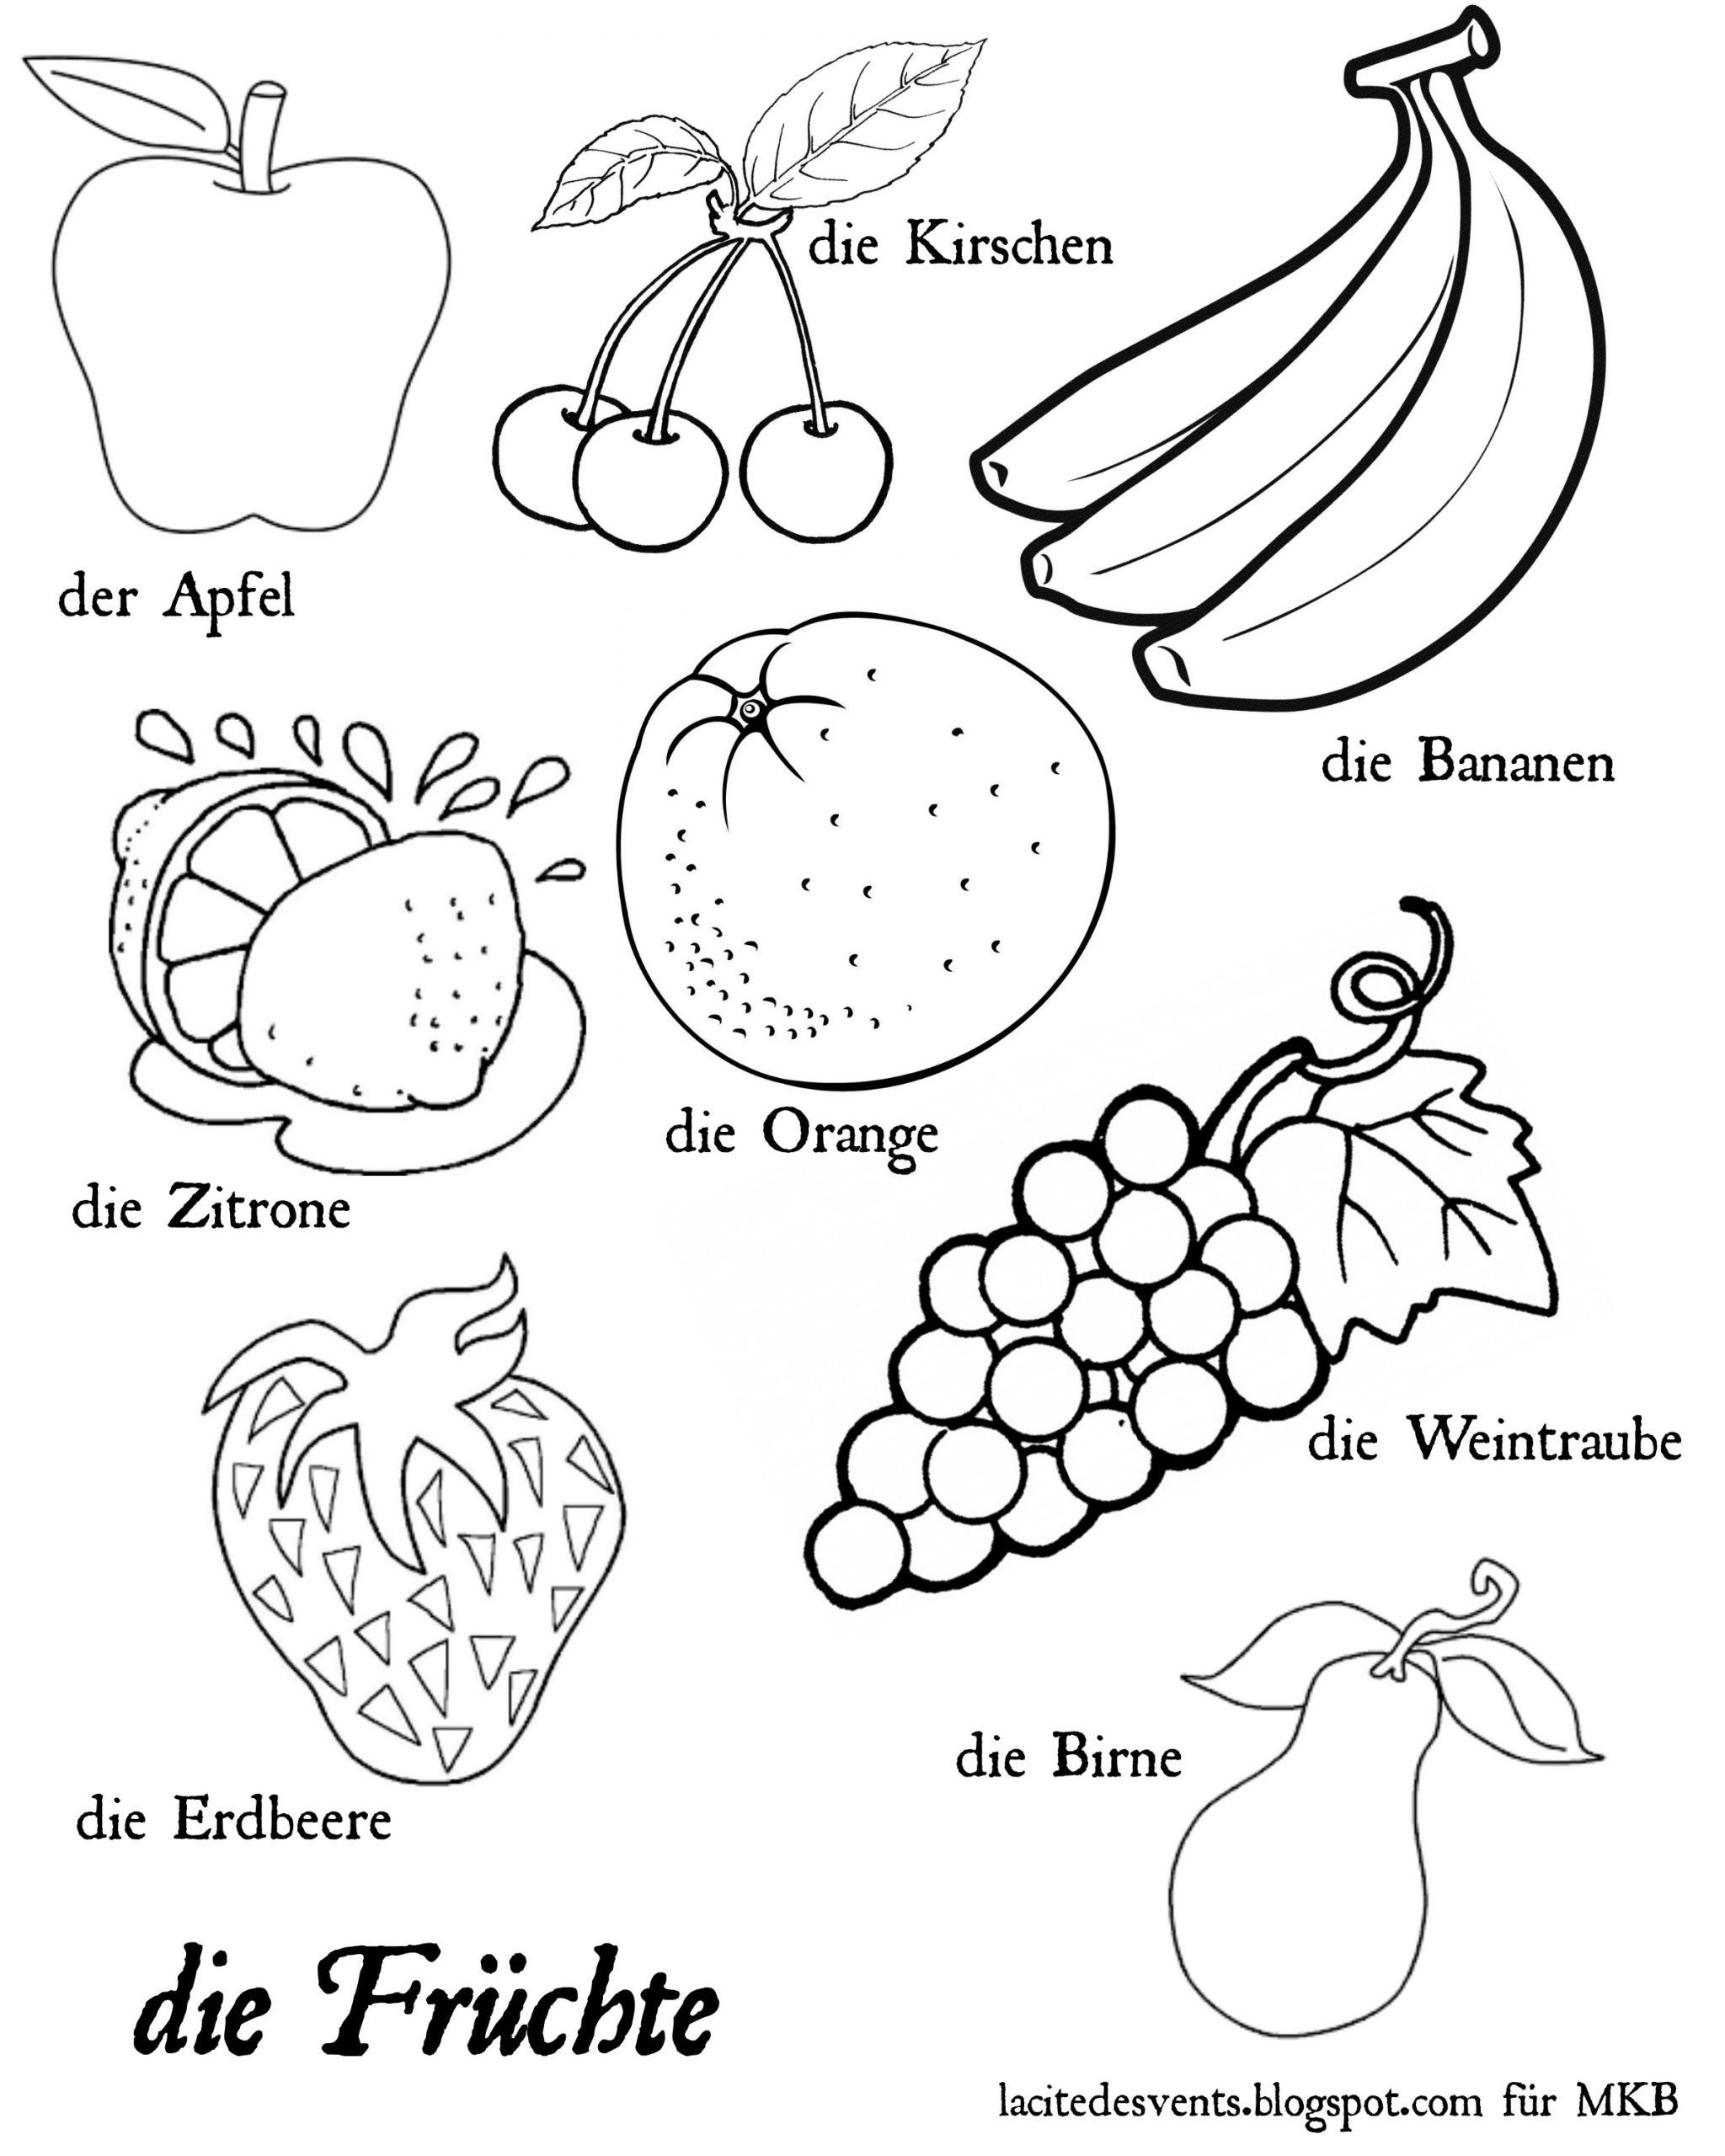 Coloring Fruits And Vegetables Dialogueeurope Nursery